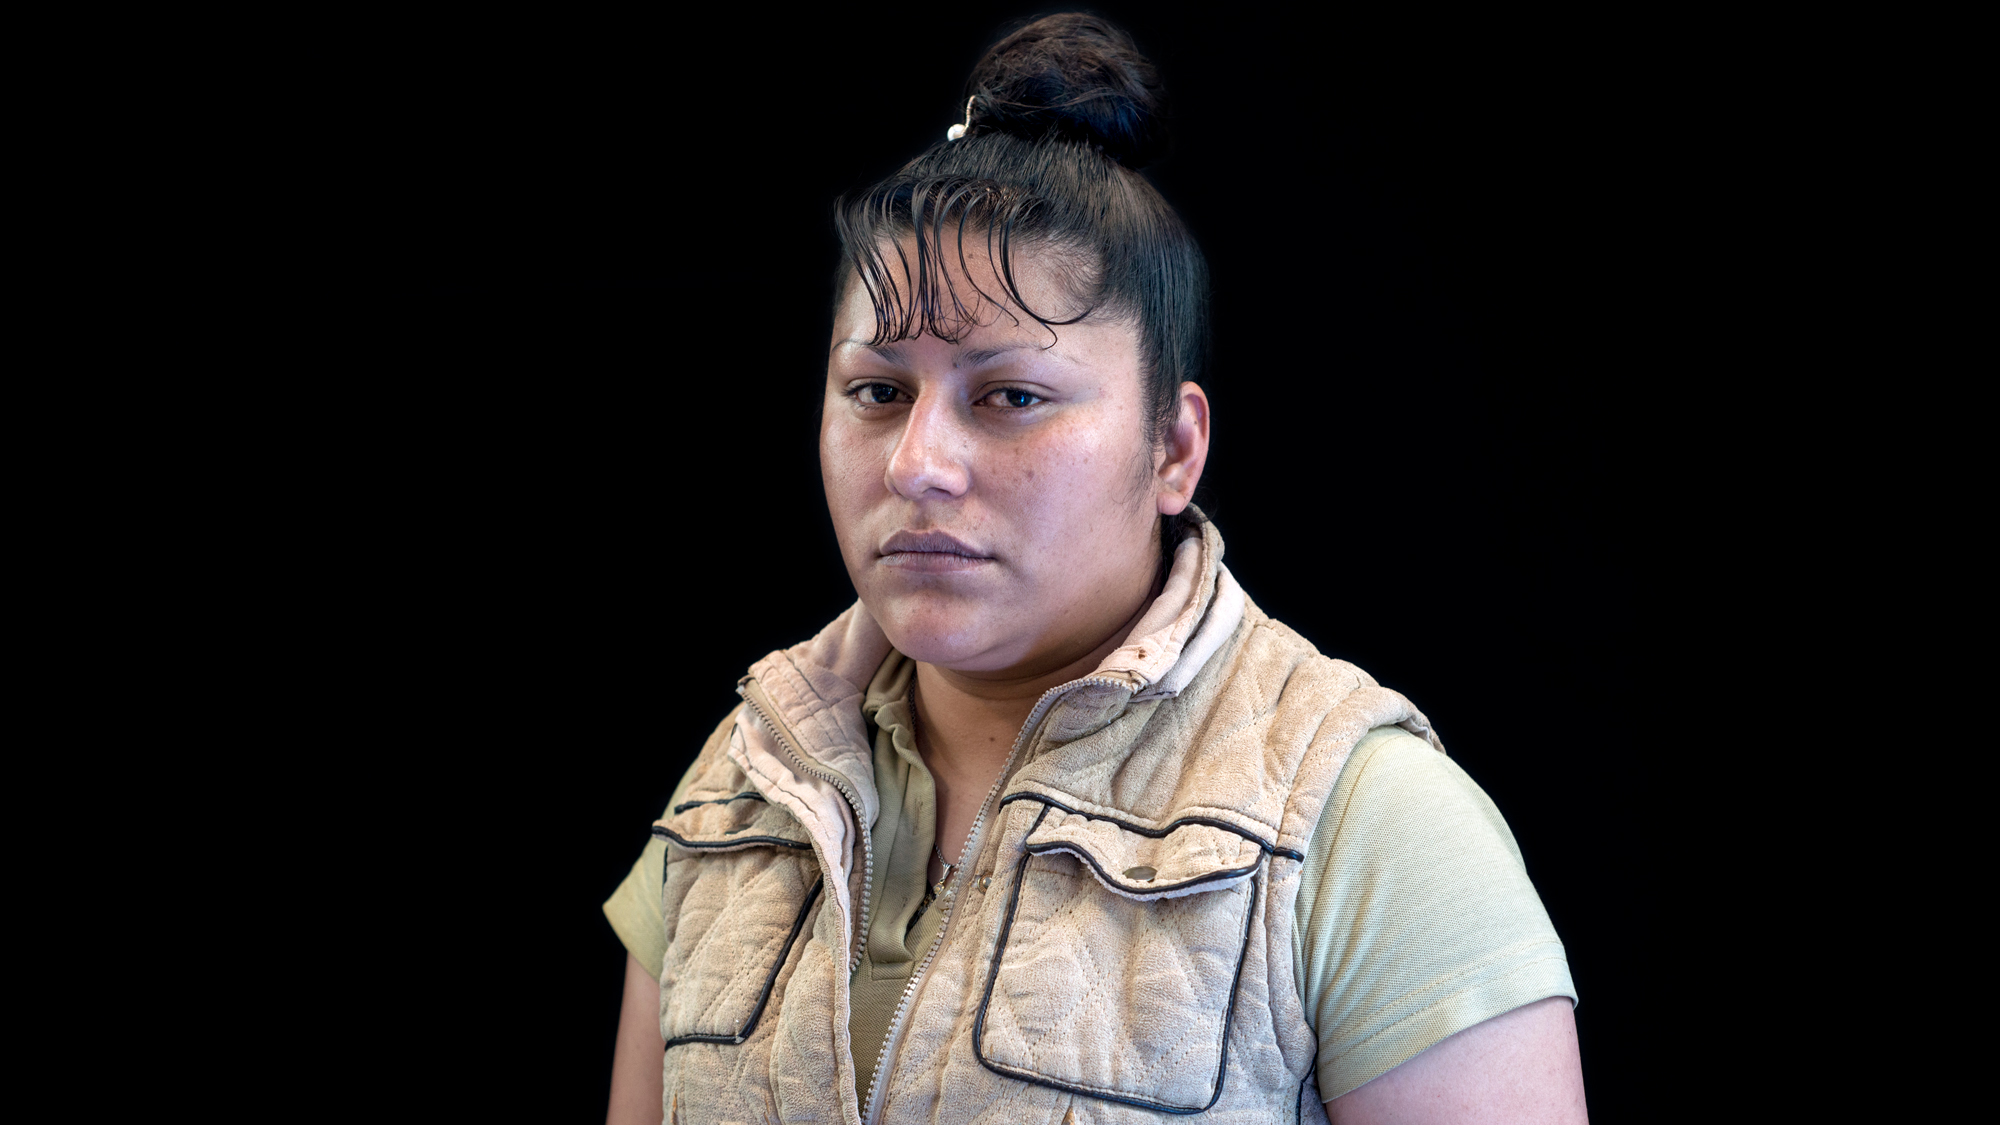 A portrait of inmate Carmela Rodriguez Reyes in Mexico.